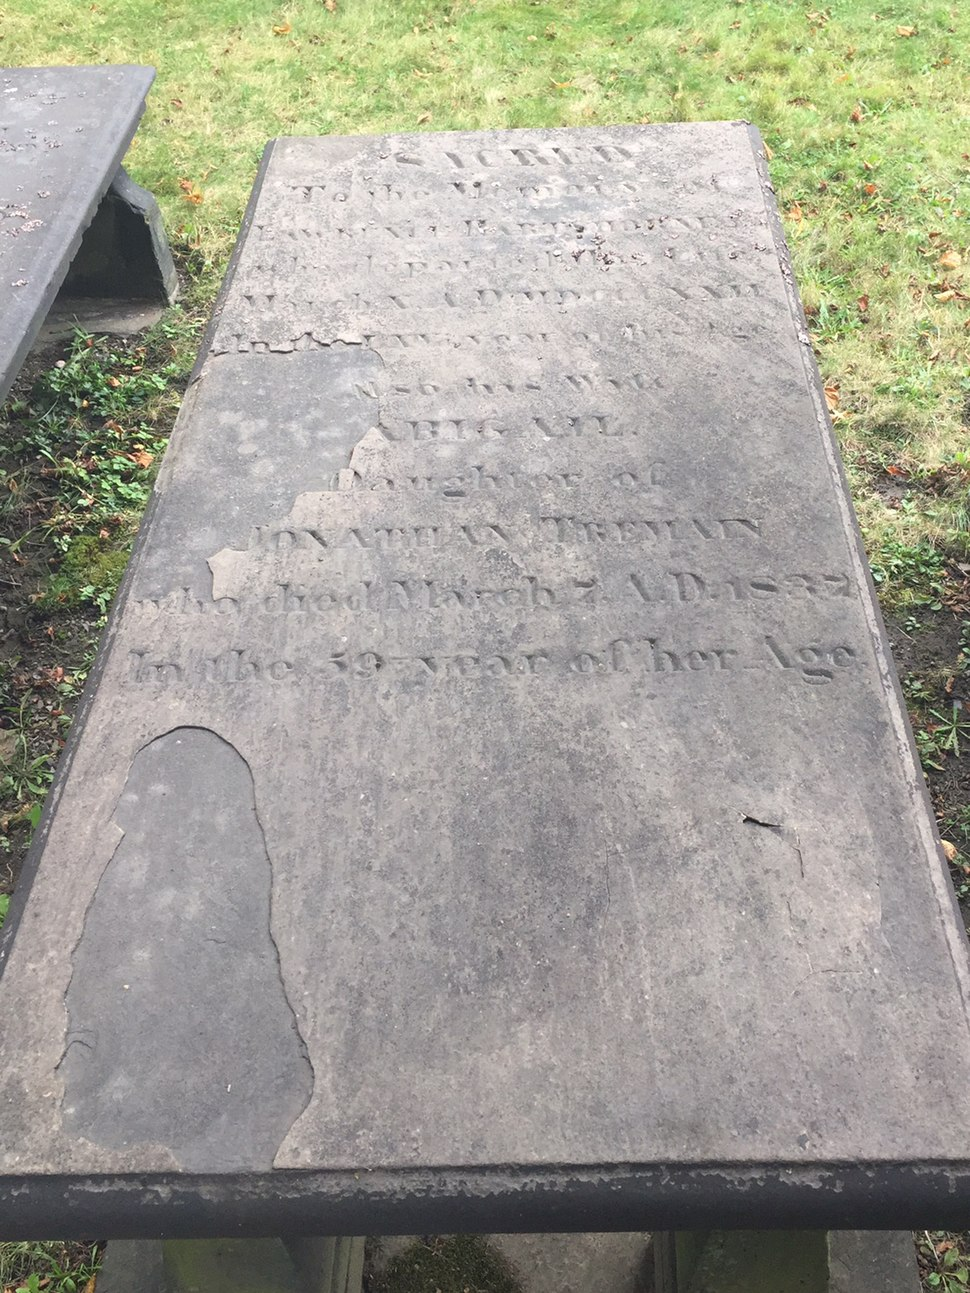 Lawrence Hartshorne, Old Burying Ground, Halifax, Nova Scotia